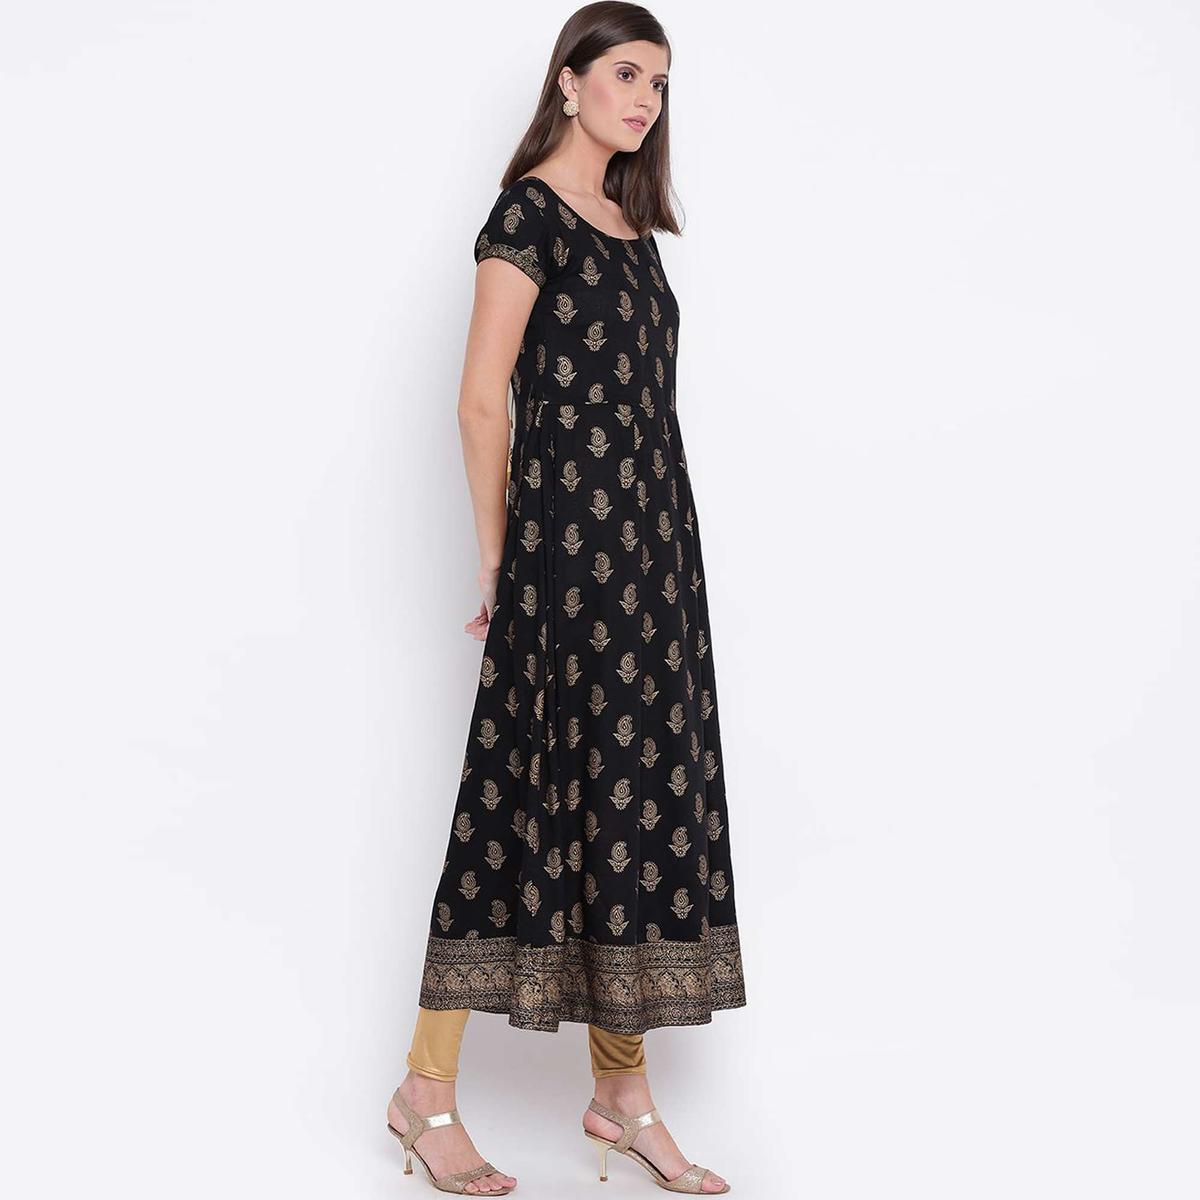 Stylum Exceptional Black Colored Party Wear Foil Printed Rayon Kurti